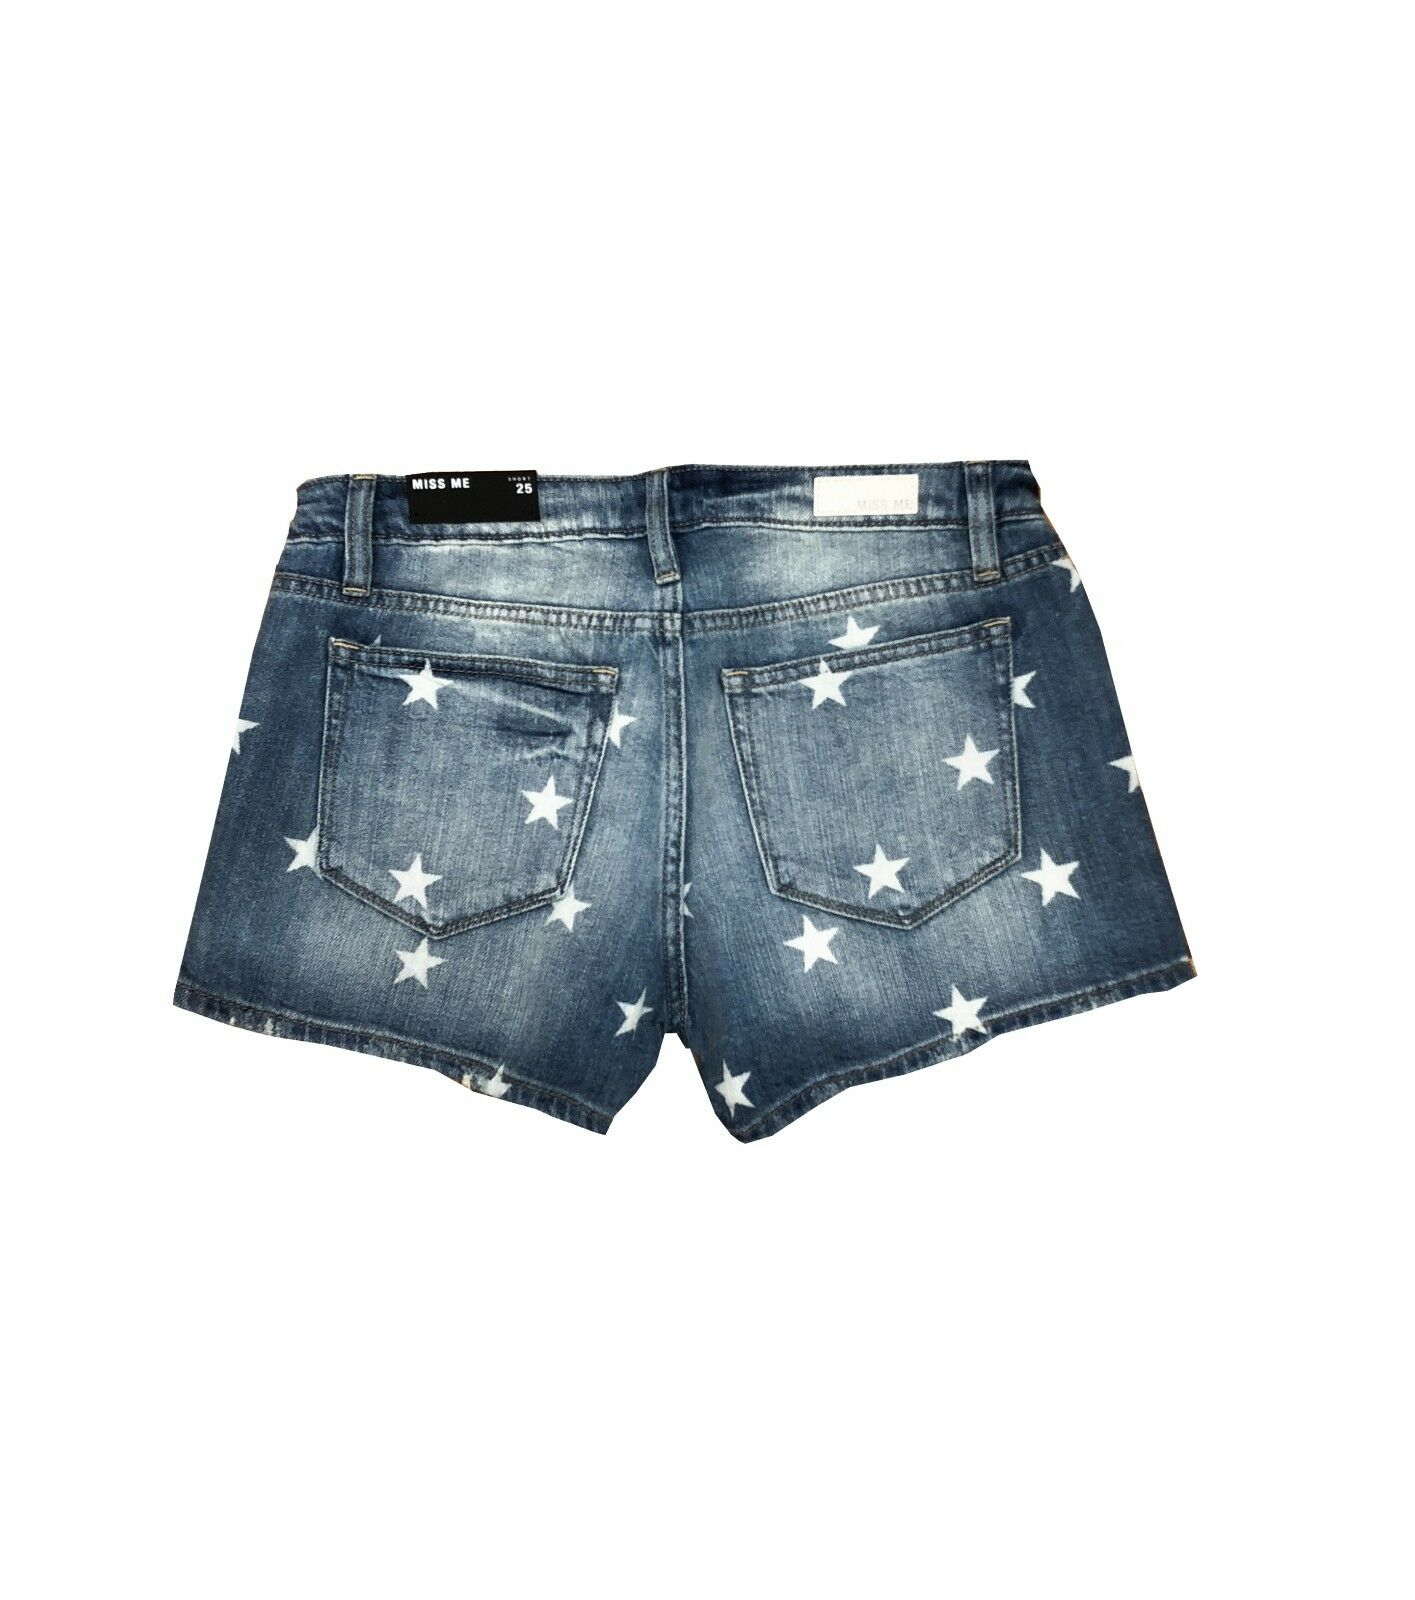 NWT MISS ME Women Shorts Jeans Seeing Stars Party Beach Hot Sexy Summer Denim